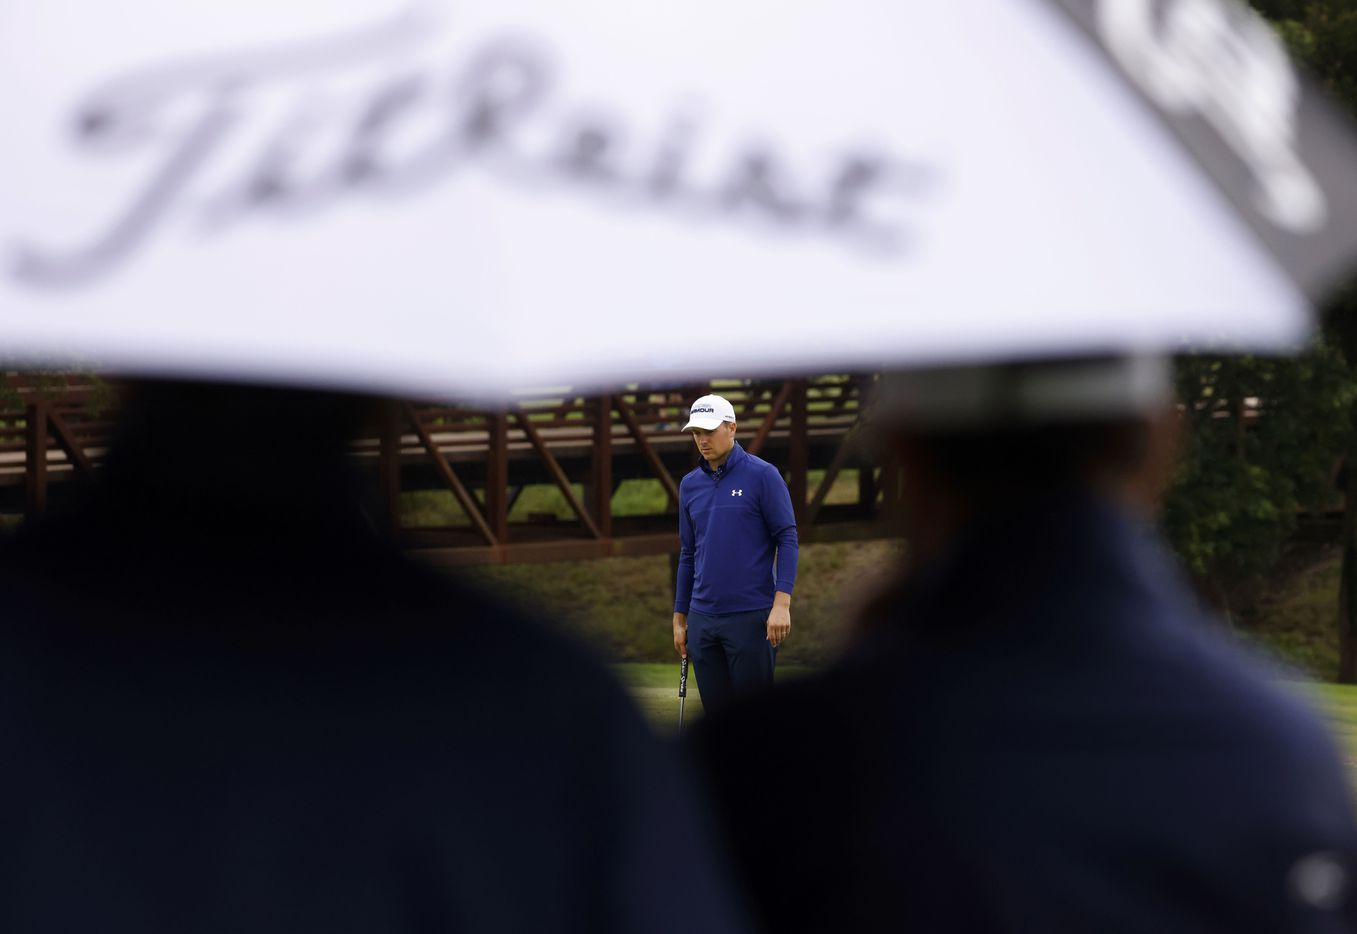 Jordan Spieth looks over the green on the 4th hole as the rain starts during round 4 of the AT&T Byron Nelson  at TPC Craig Ranch on Saturday, May 16, 2021 in McKinney, Texas. (Vernon Bryant/The Dallas Morning News)